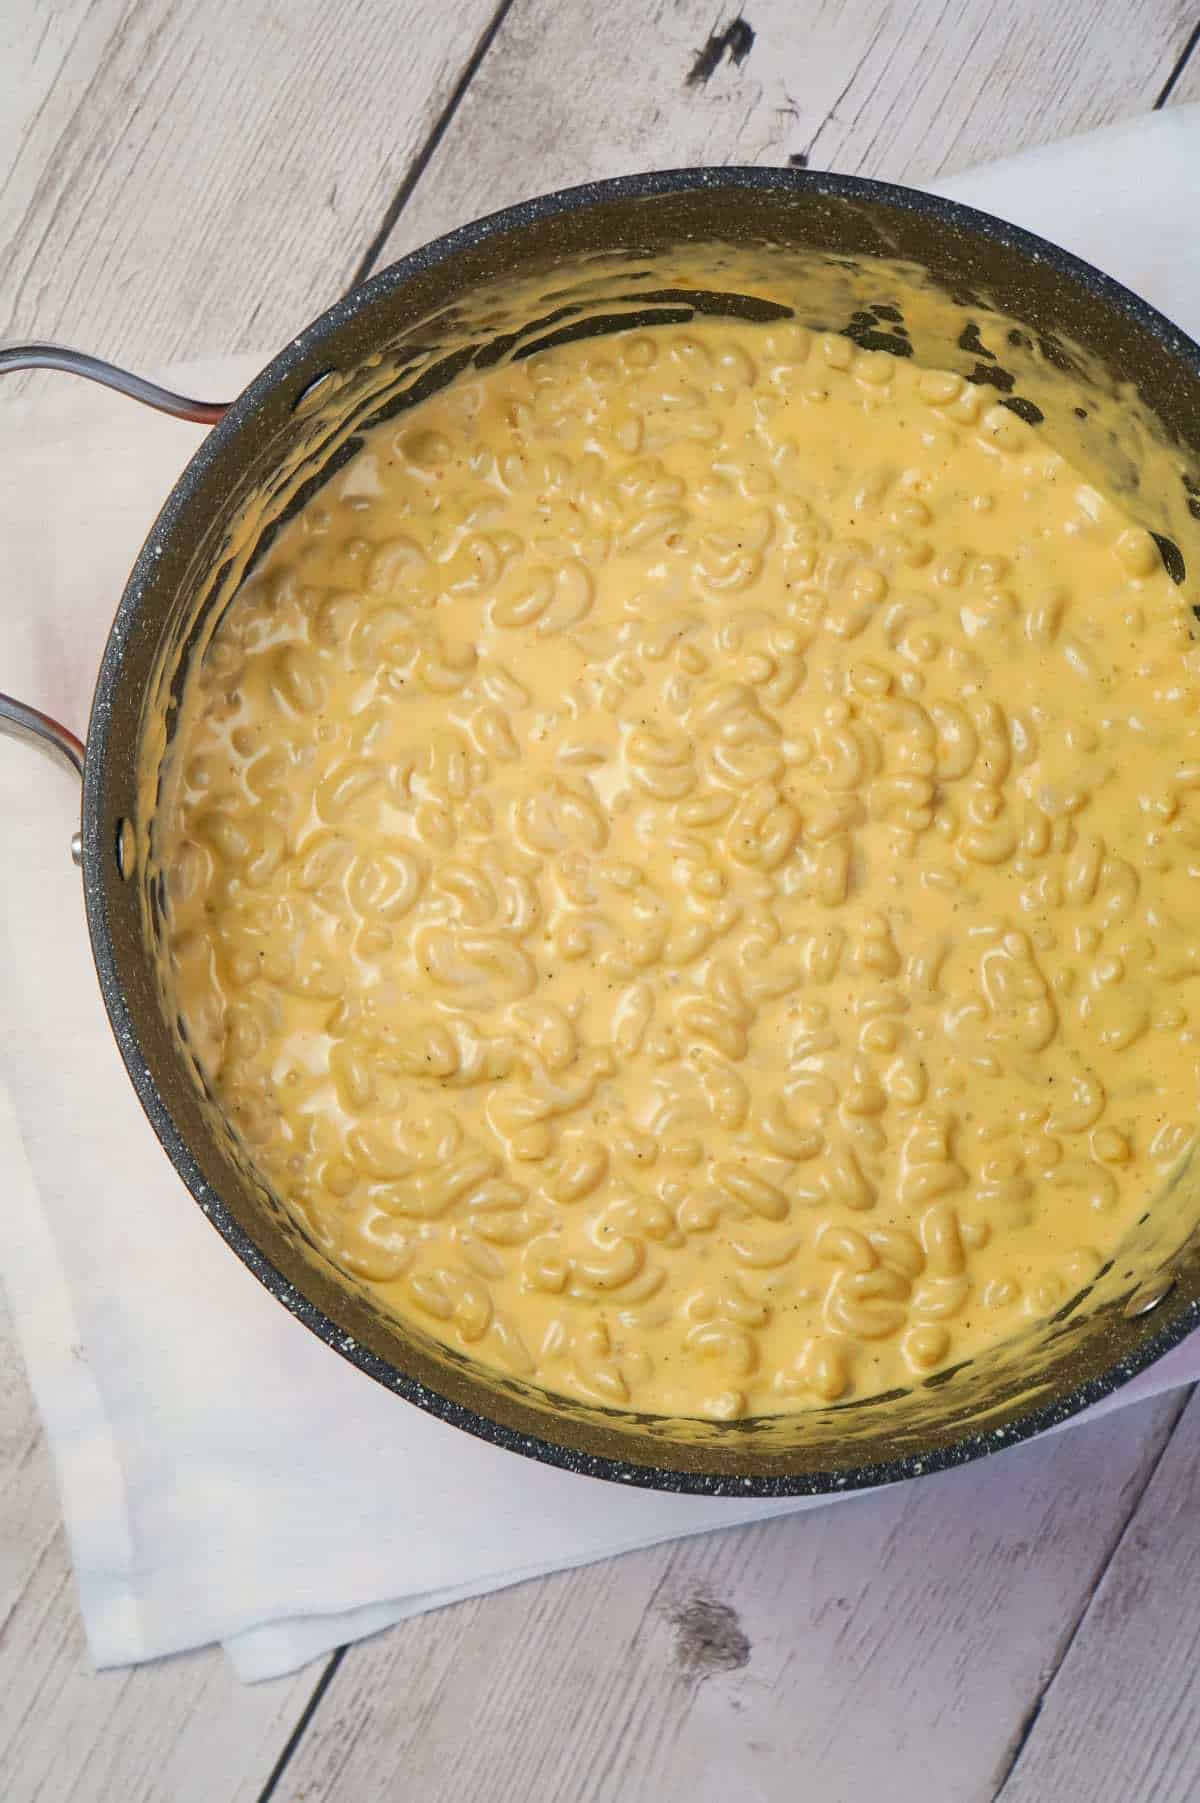 Creamy Stovetop Mac and Cheese is an easy and delicious homemade macaroni and cheese recipe made with cheddar cheese soup, heavy cream, mozzarella and cheddar cheese.